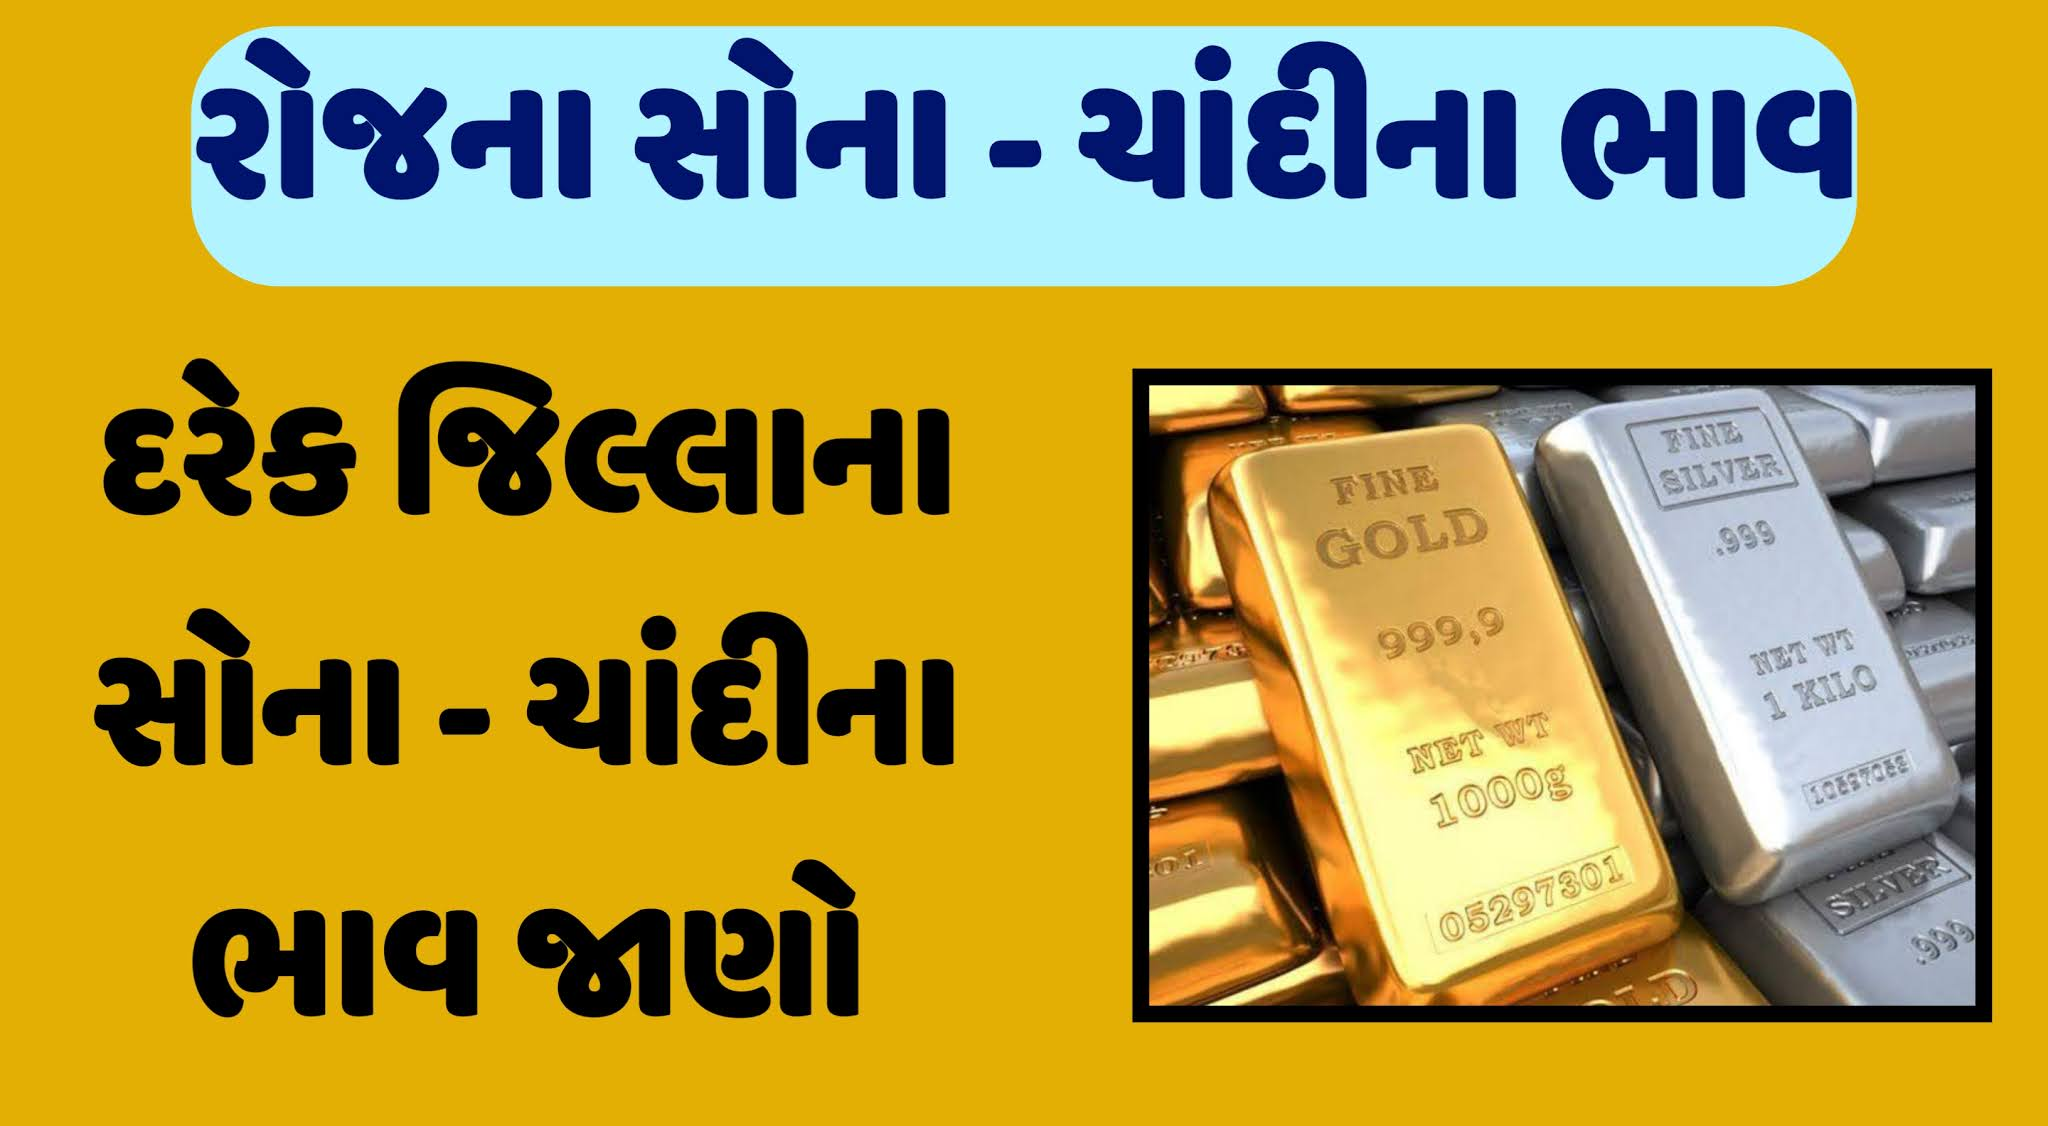 Gold rate in India,gold rate,gold rate today,gold rate in India graph,1 gram gold rate in India today, gold price in India chart,24ct gold price today